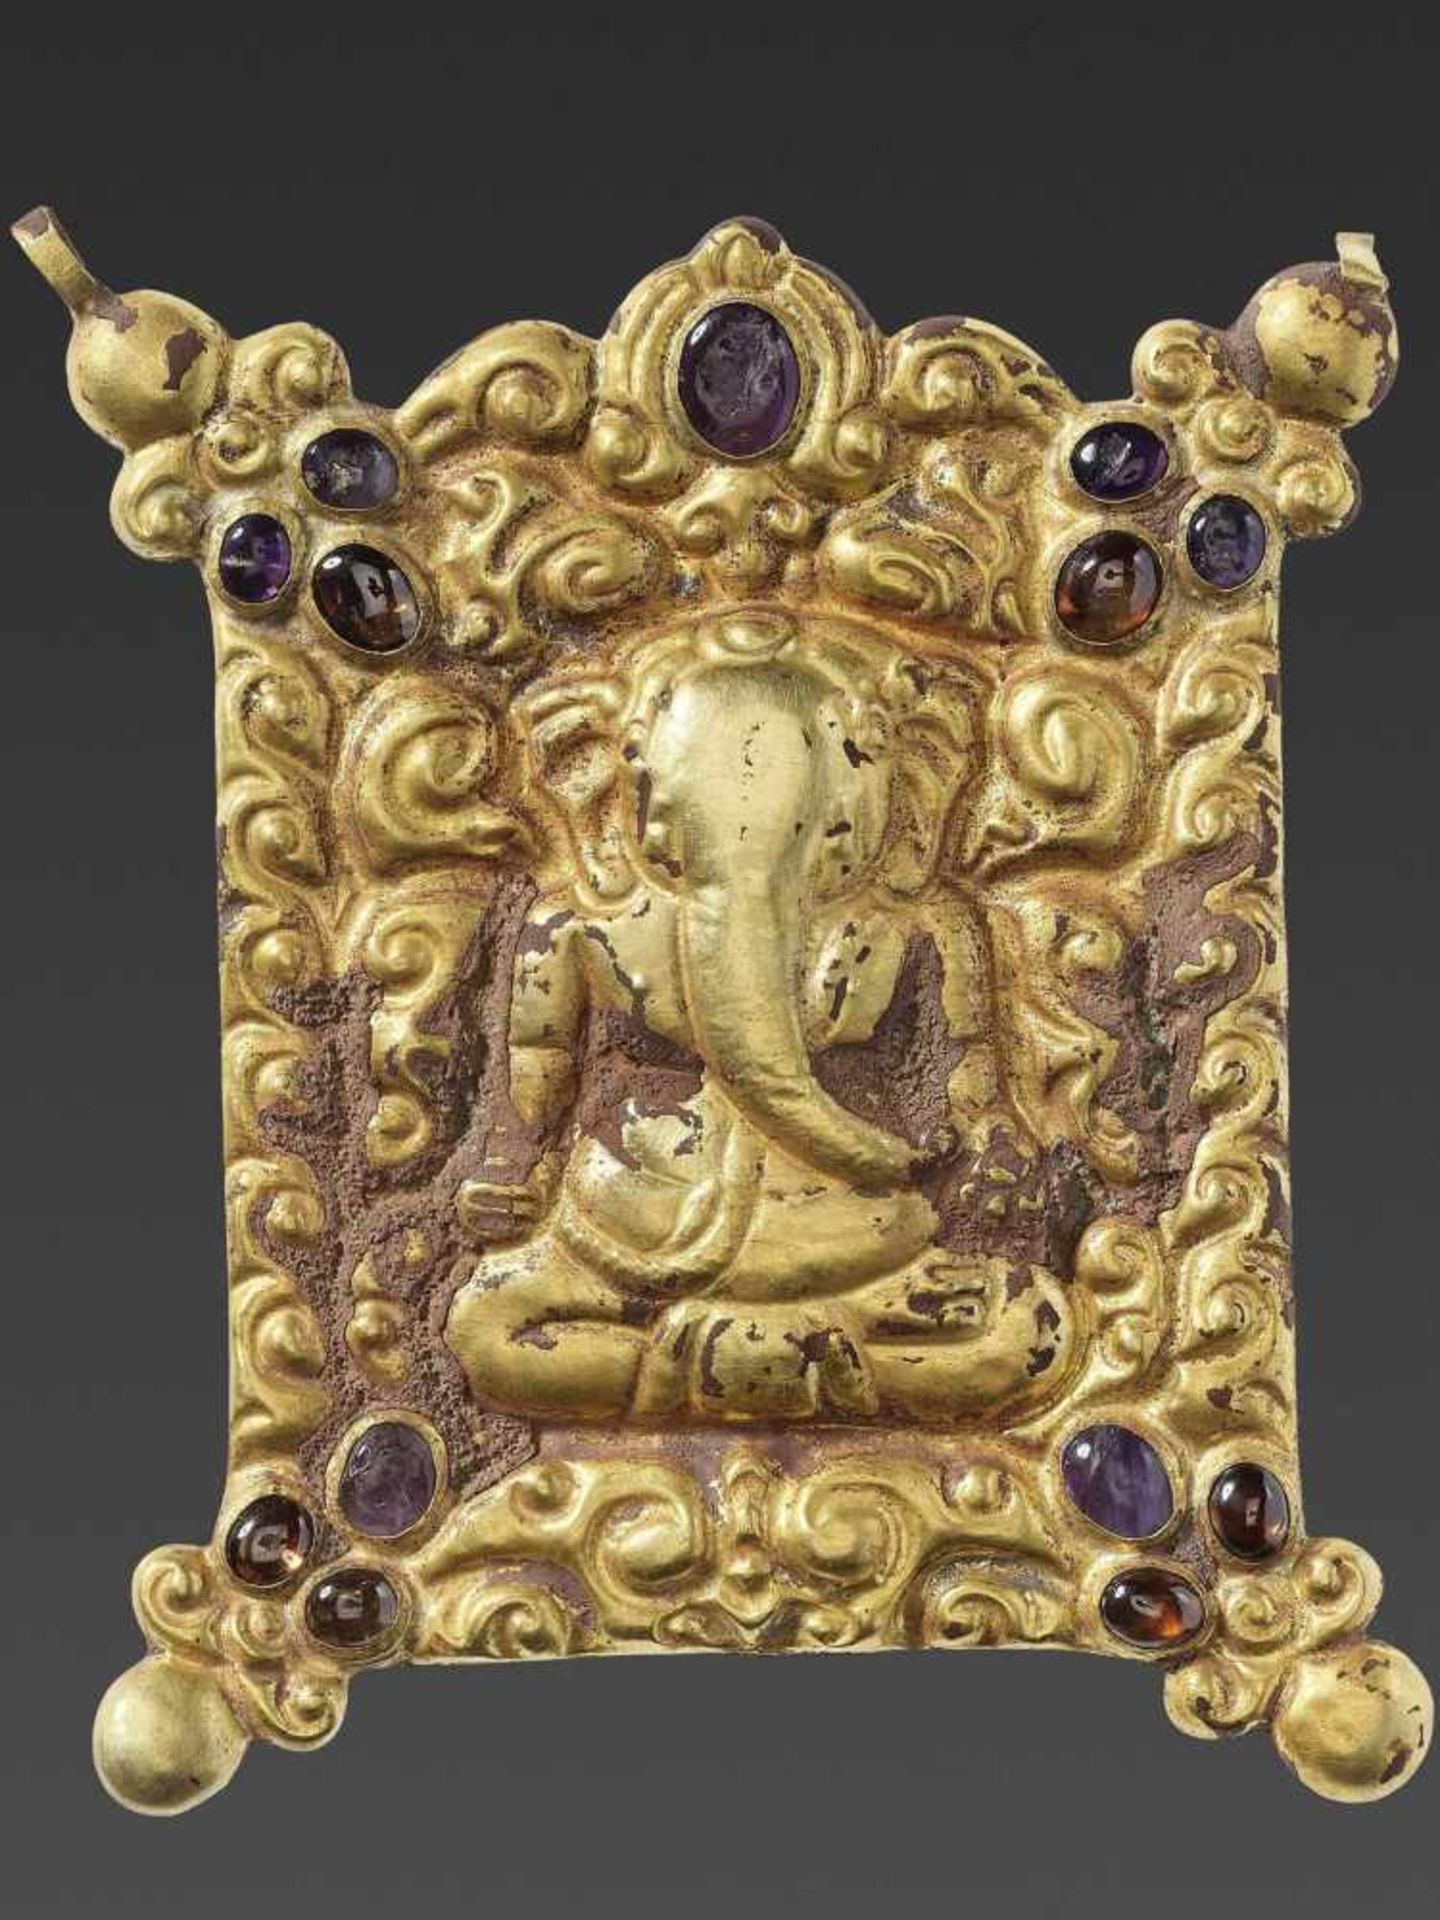 A CHAM GEMSTONE-SET GOLD REPOUSSÉ PECTORAL DEPICTING GANESHA MEDITATING - Bild 2 aus 4